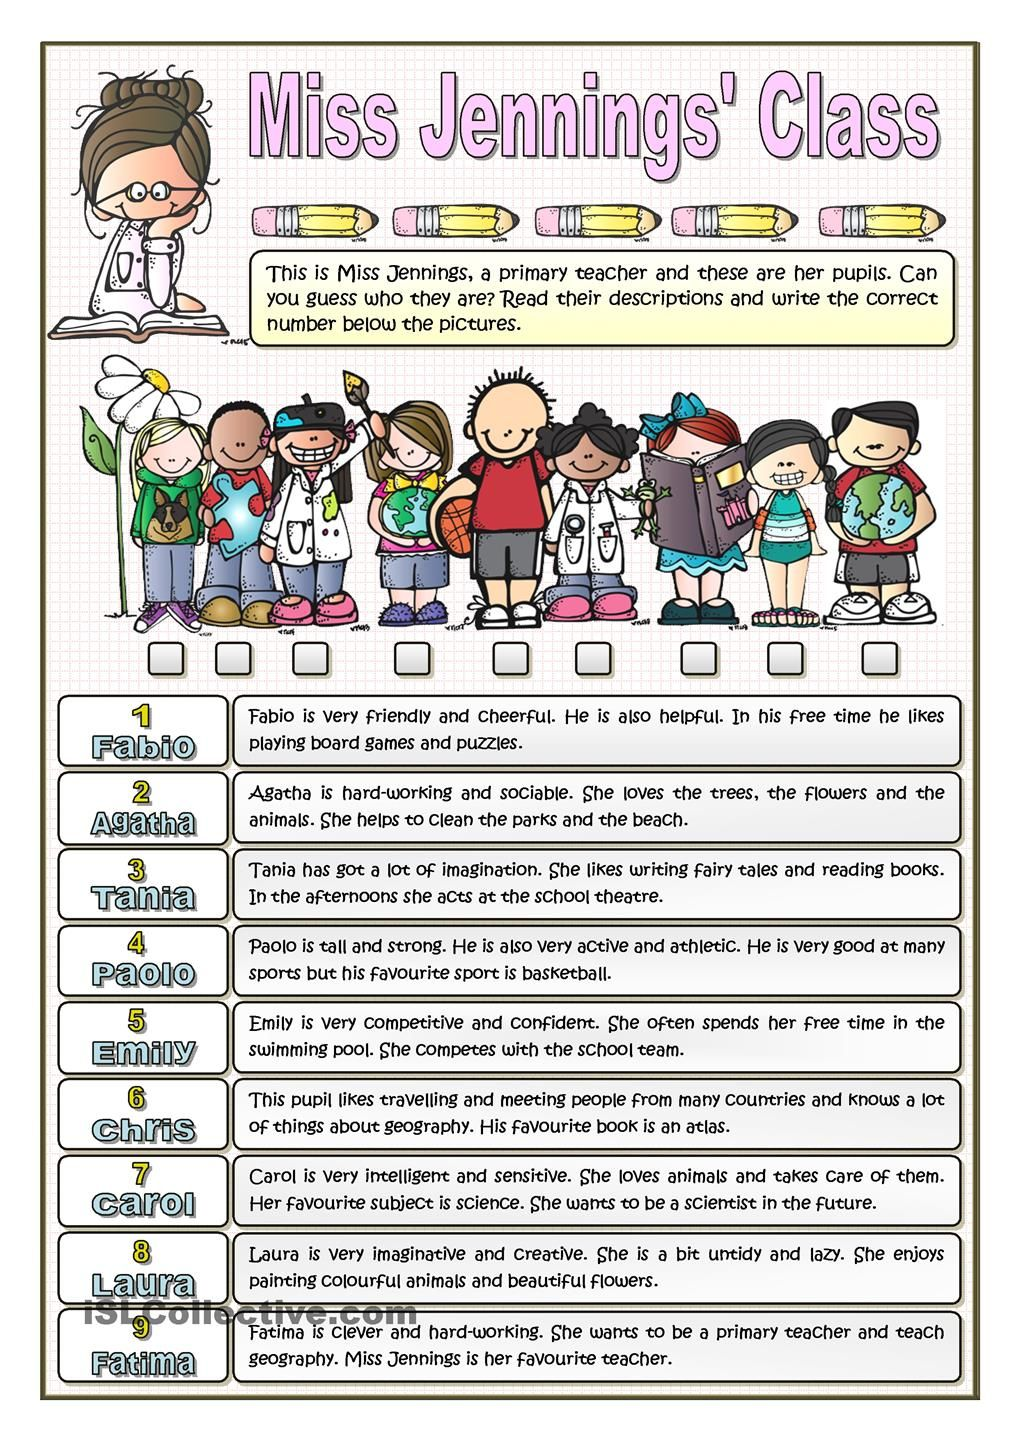 worksheet Esl Personality Worksheet miss jennings class personality and interests follow my 236 free esl adjectives to describe character worksheets